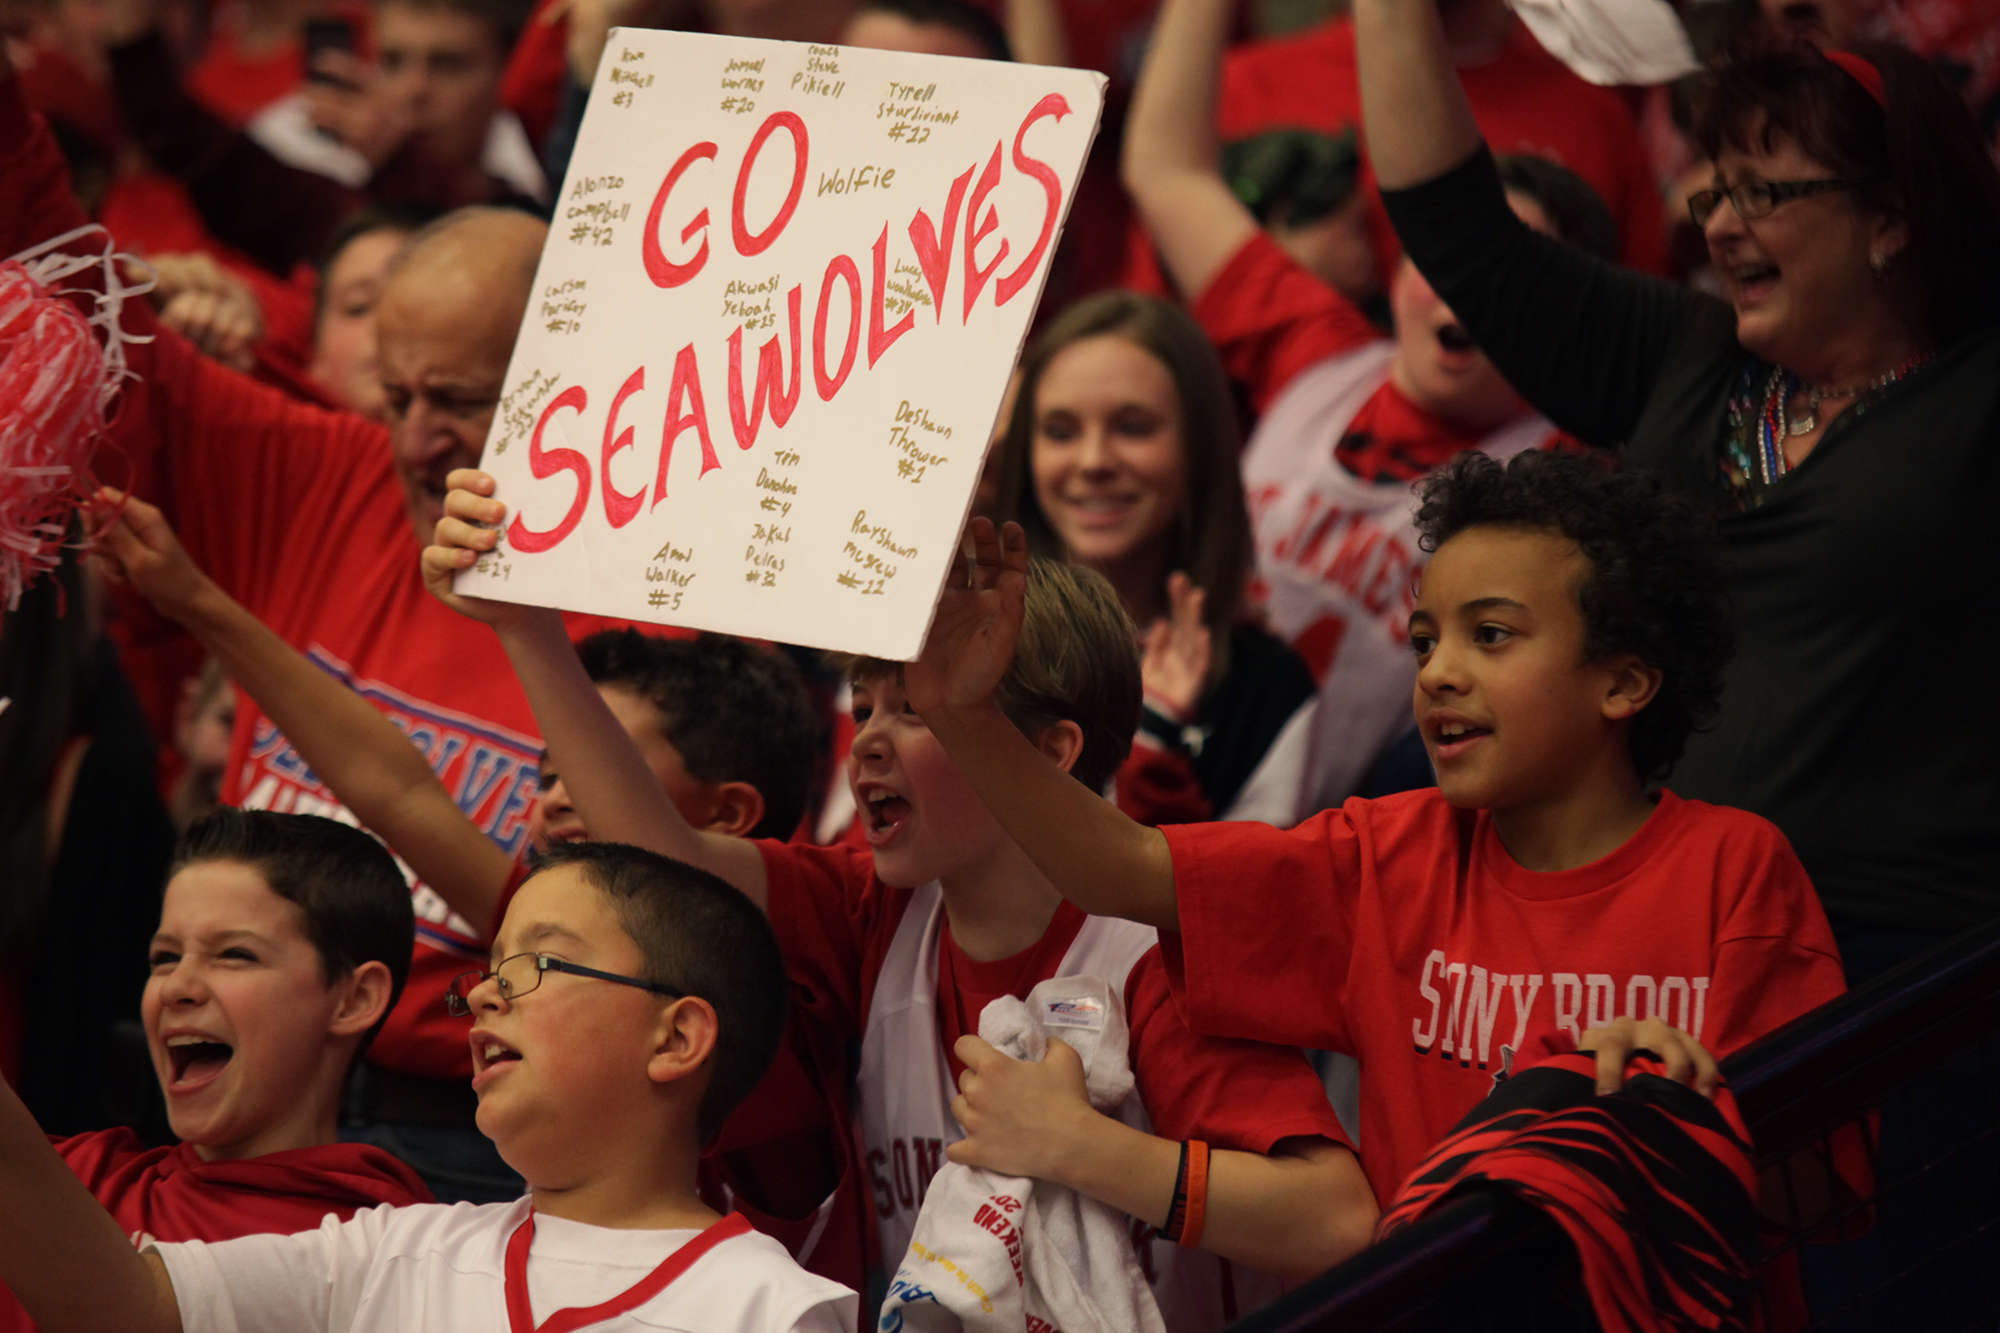 Young Stony Brook fans hold up a poster signed by members of the Stony Brook Men's Basketball team during their championship game. CHRISTOPHER CAMERON/THE STATESMAN